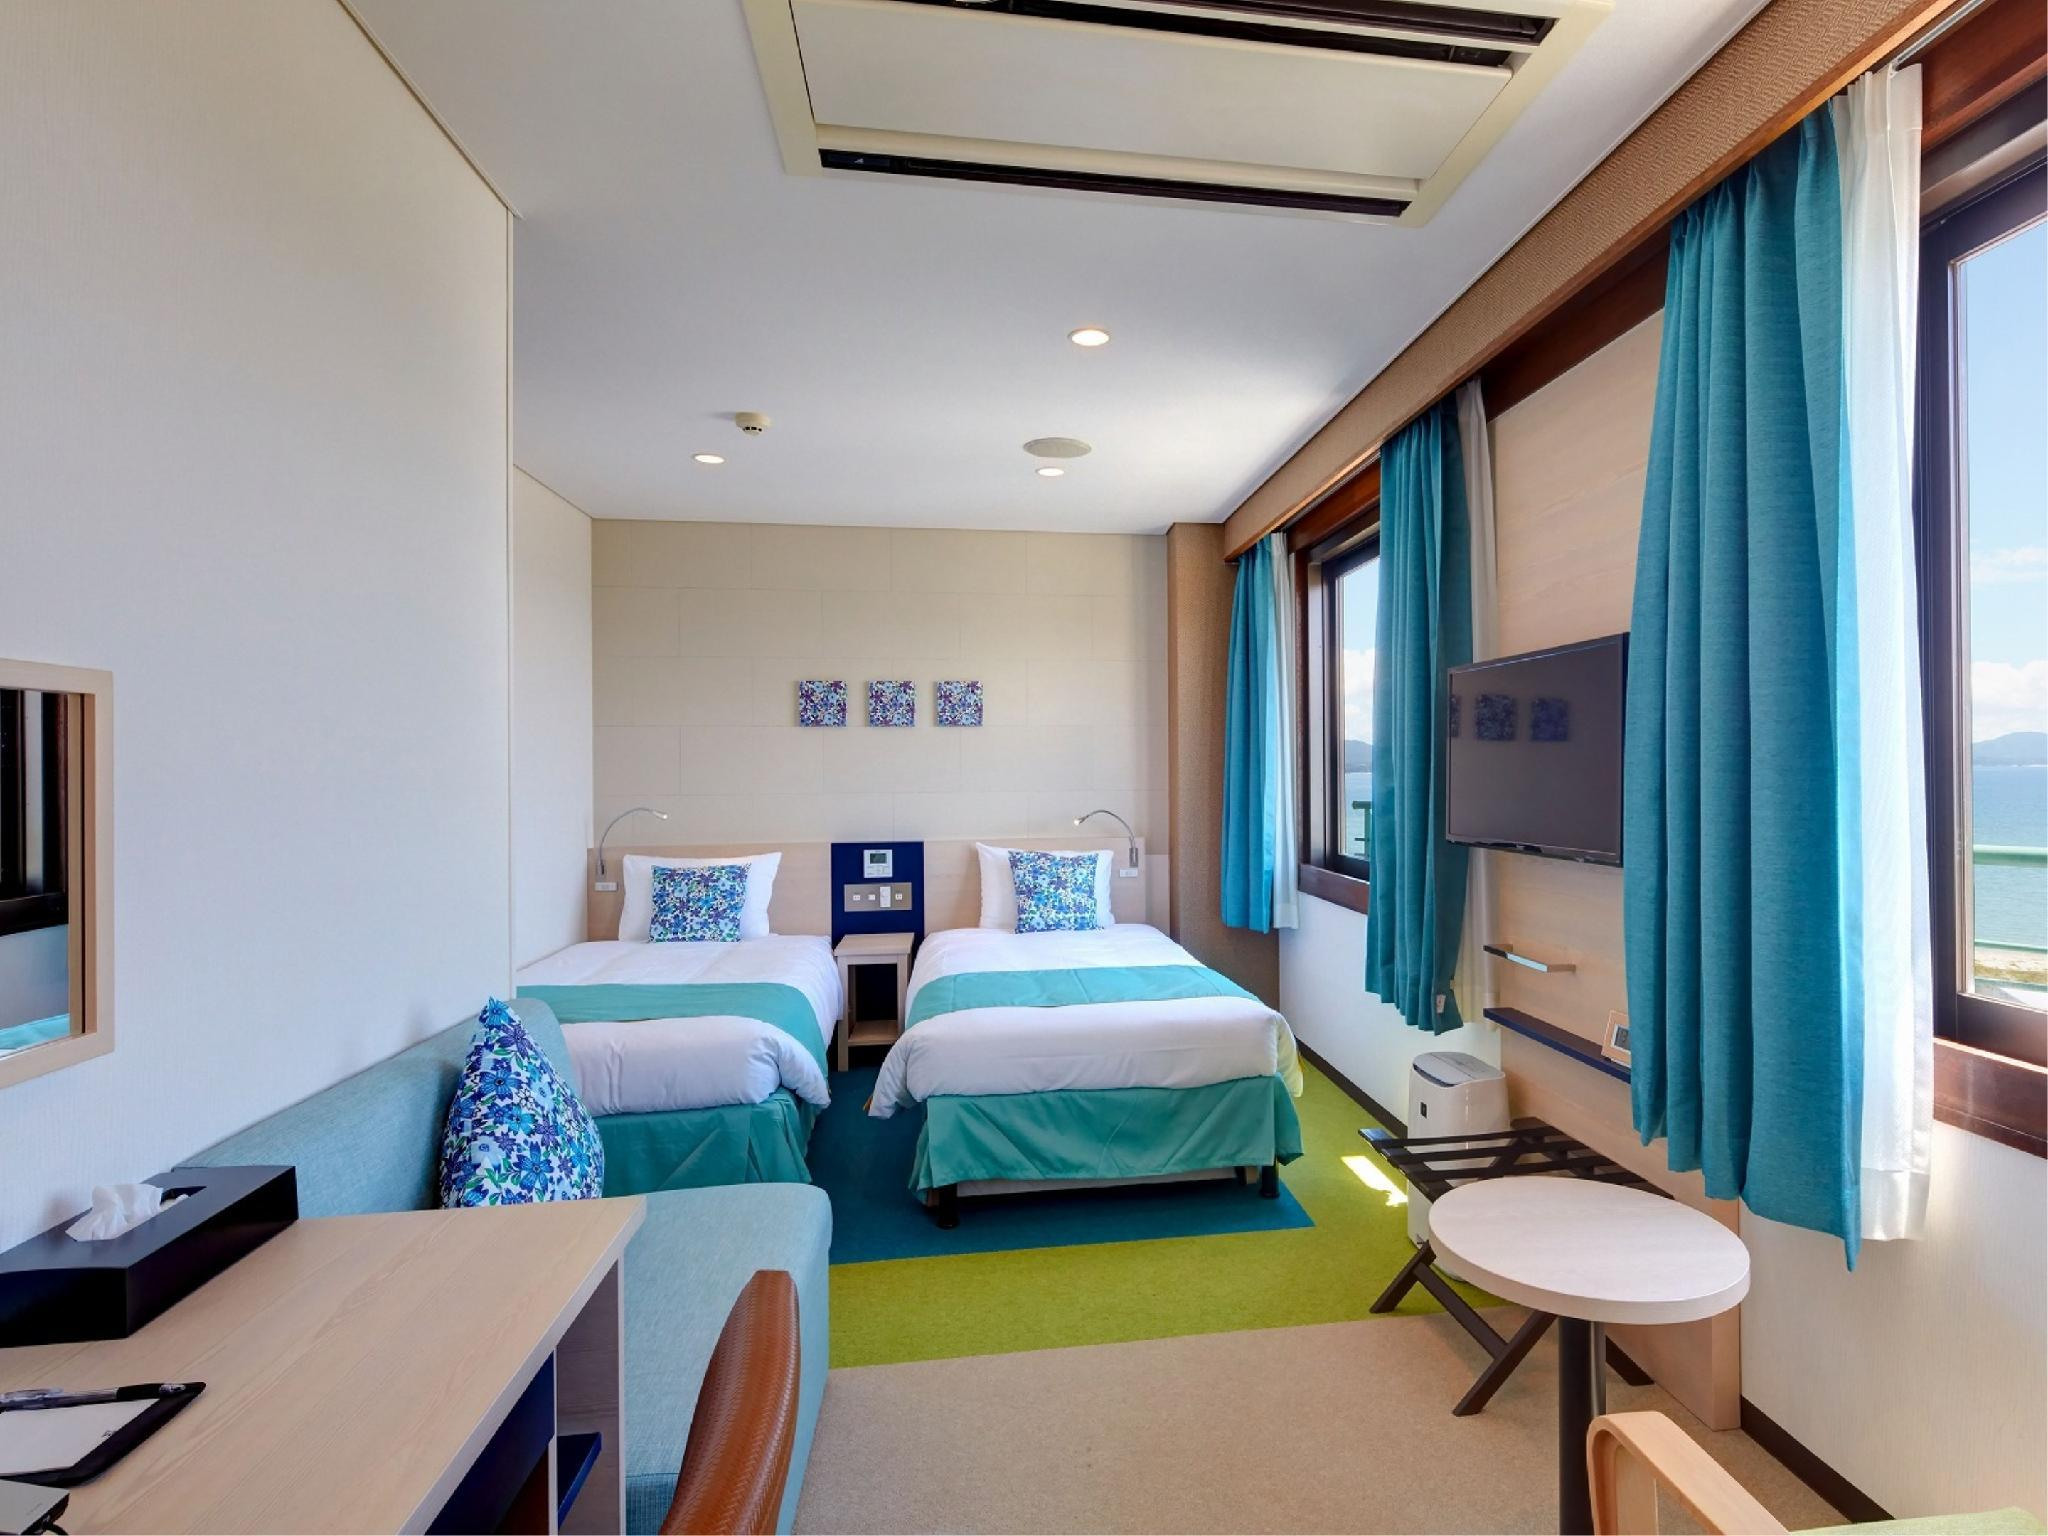 컴팩트 트윈룸(본관) (Compact Twin Room (Main Building))